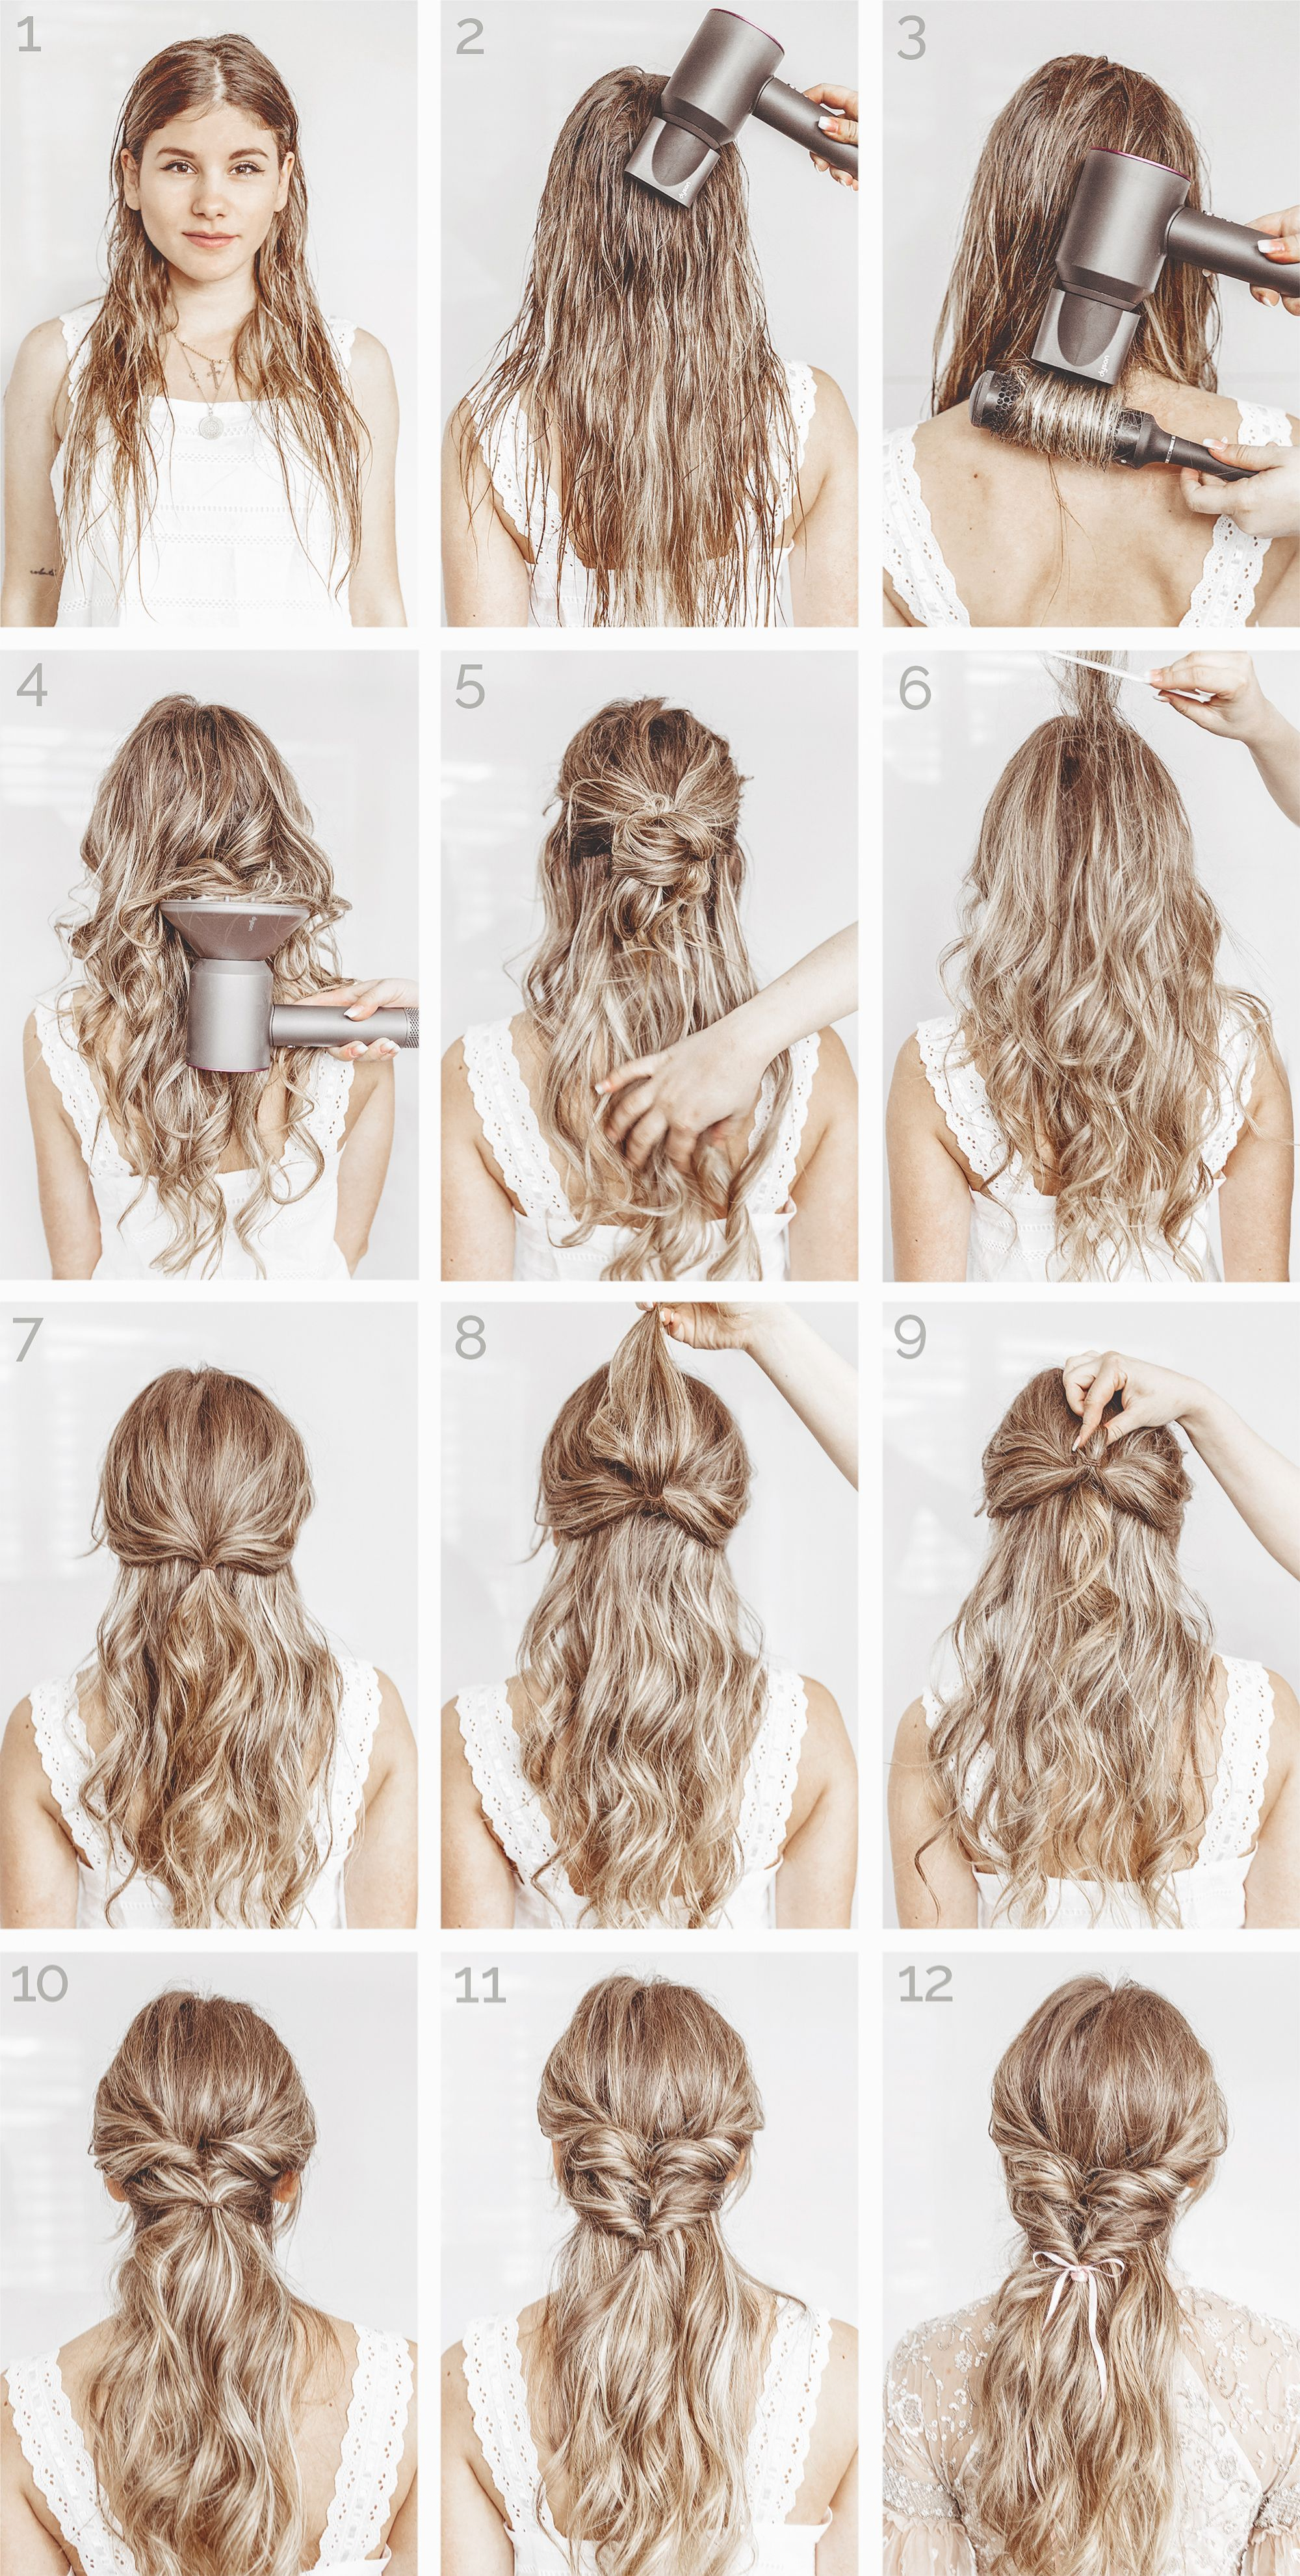 Perfectly Imperfect Messy Hair Updos For Girls With Medium To Long Hair Trubridal Wedding Blog Simple Prom Hair Hair Styles Short Hair Updo